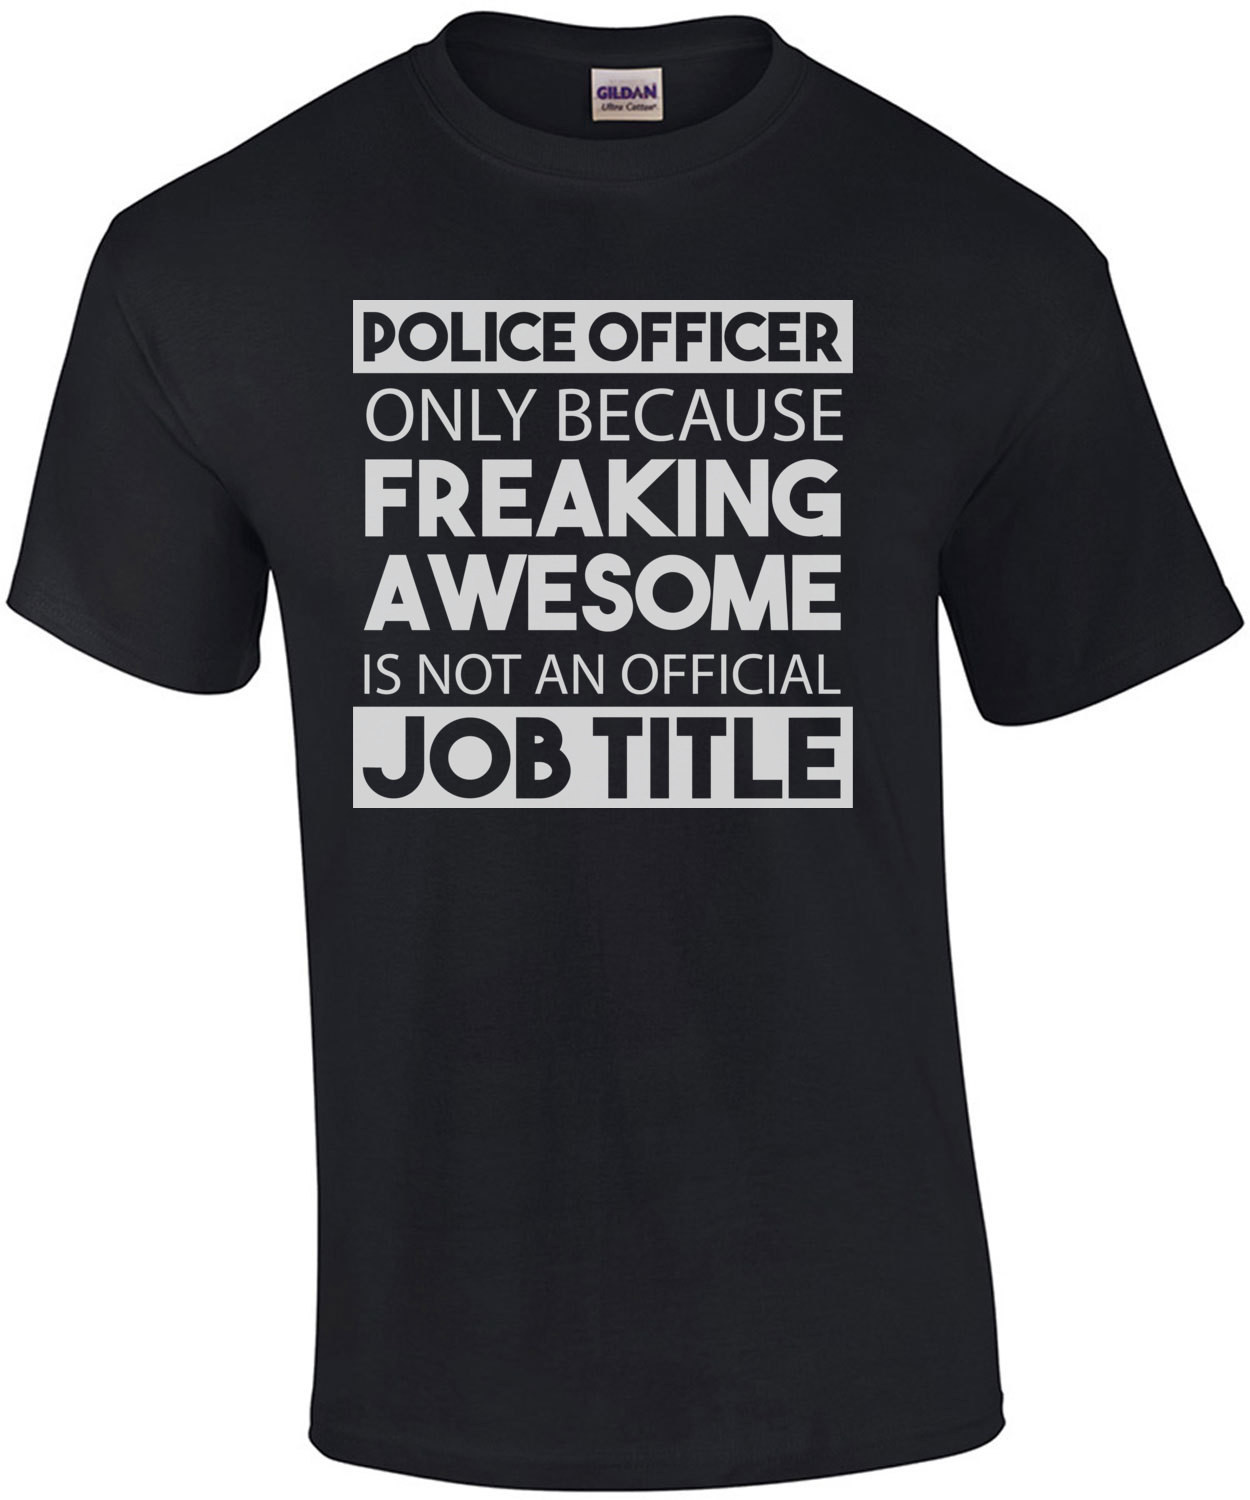 Police Officer only because freaking awesome is not an official job title - pro cop t-shirt